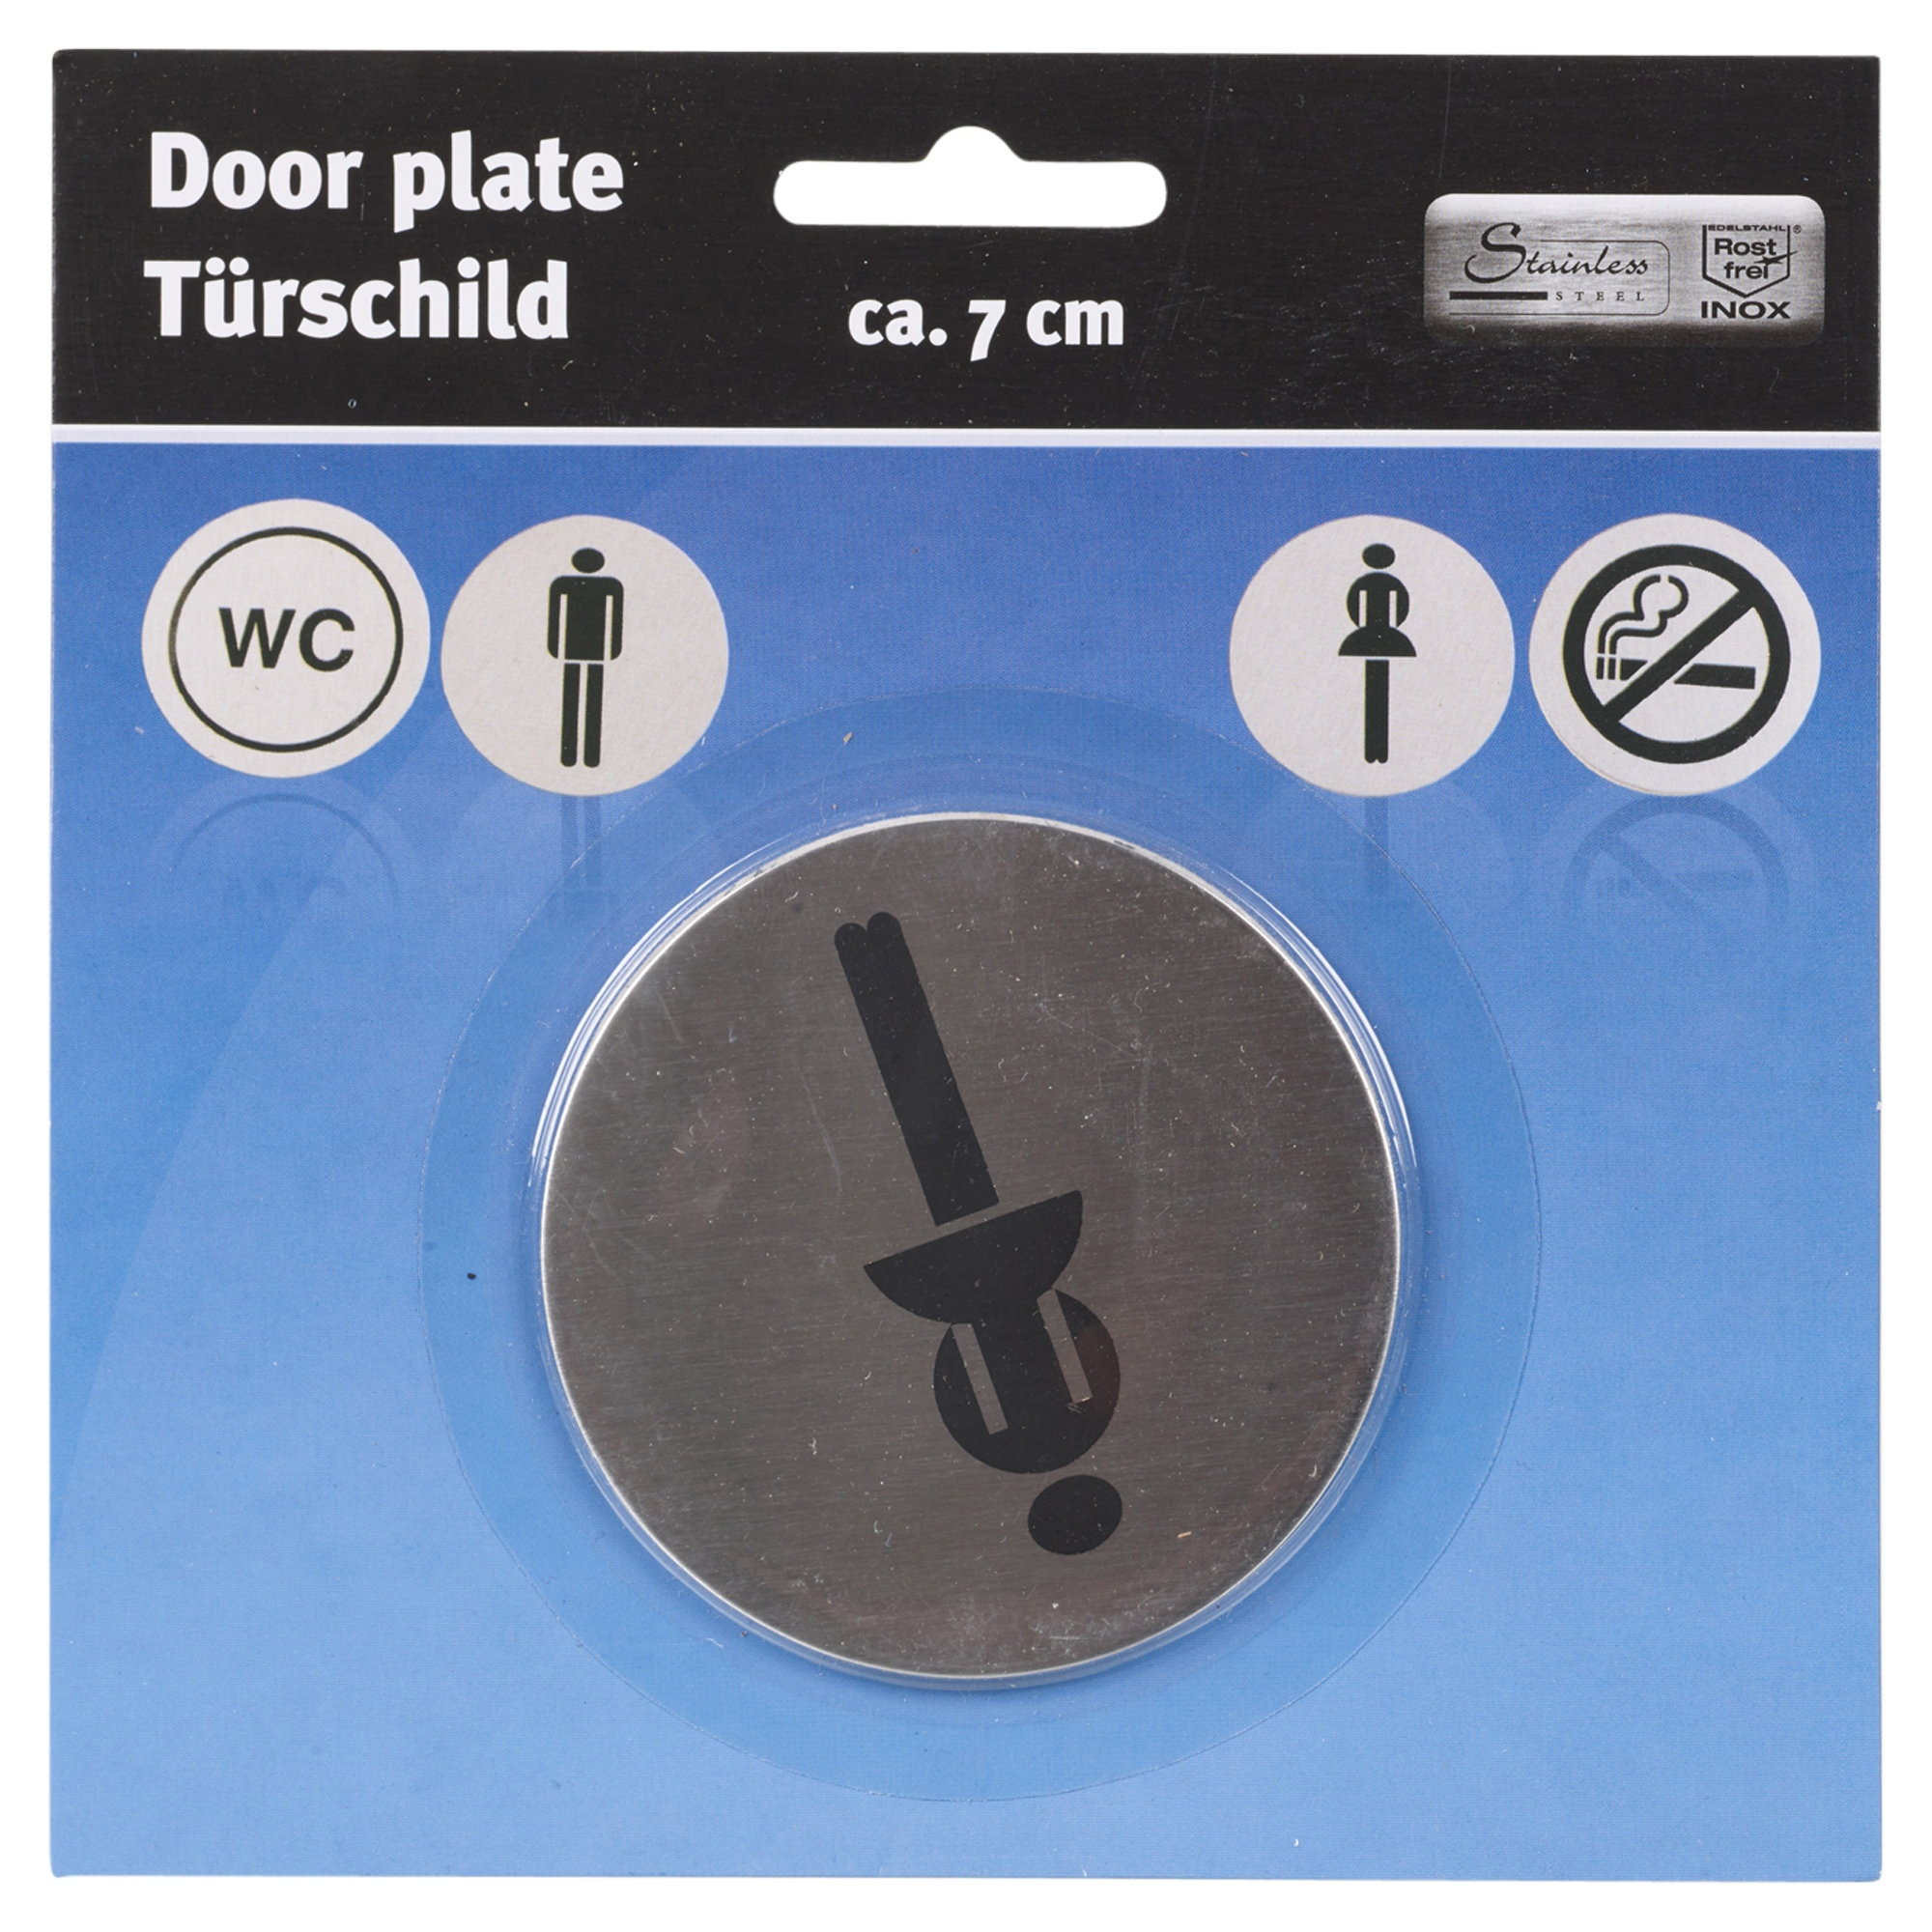 Set Of Round Circular Silver Stainless Steel Toilet Shop Bathroom Plate Signs Ebay